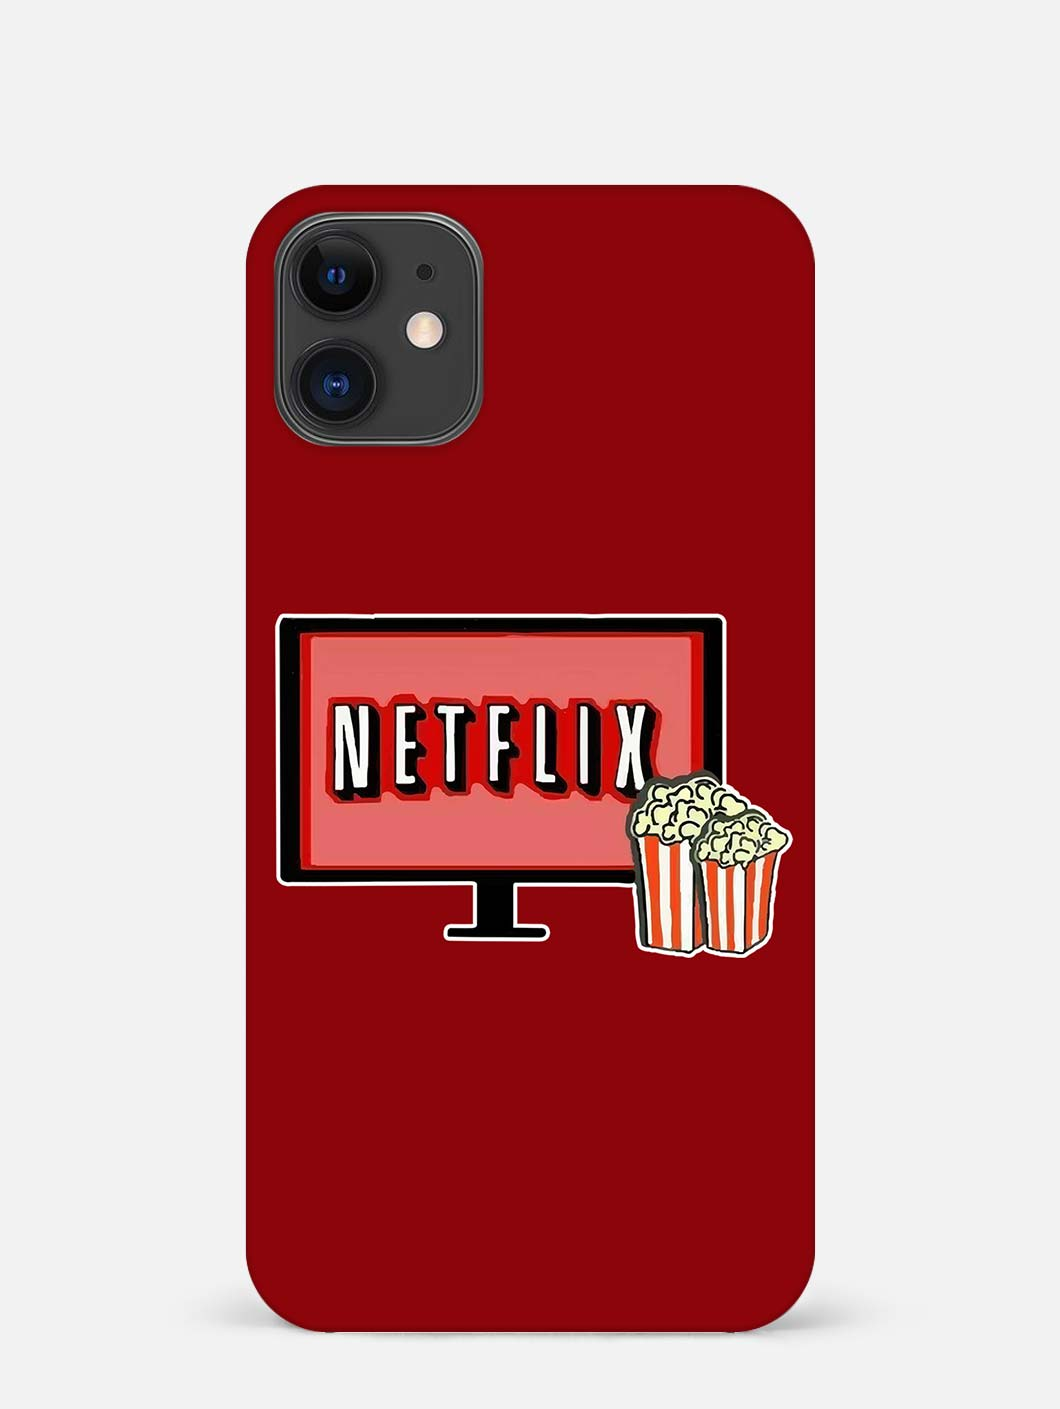 Netflix iPhone 12 Mini Mobile Cover